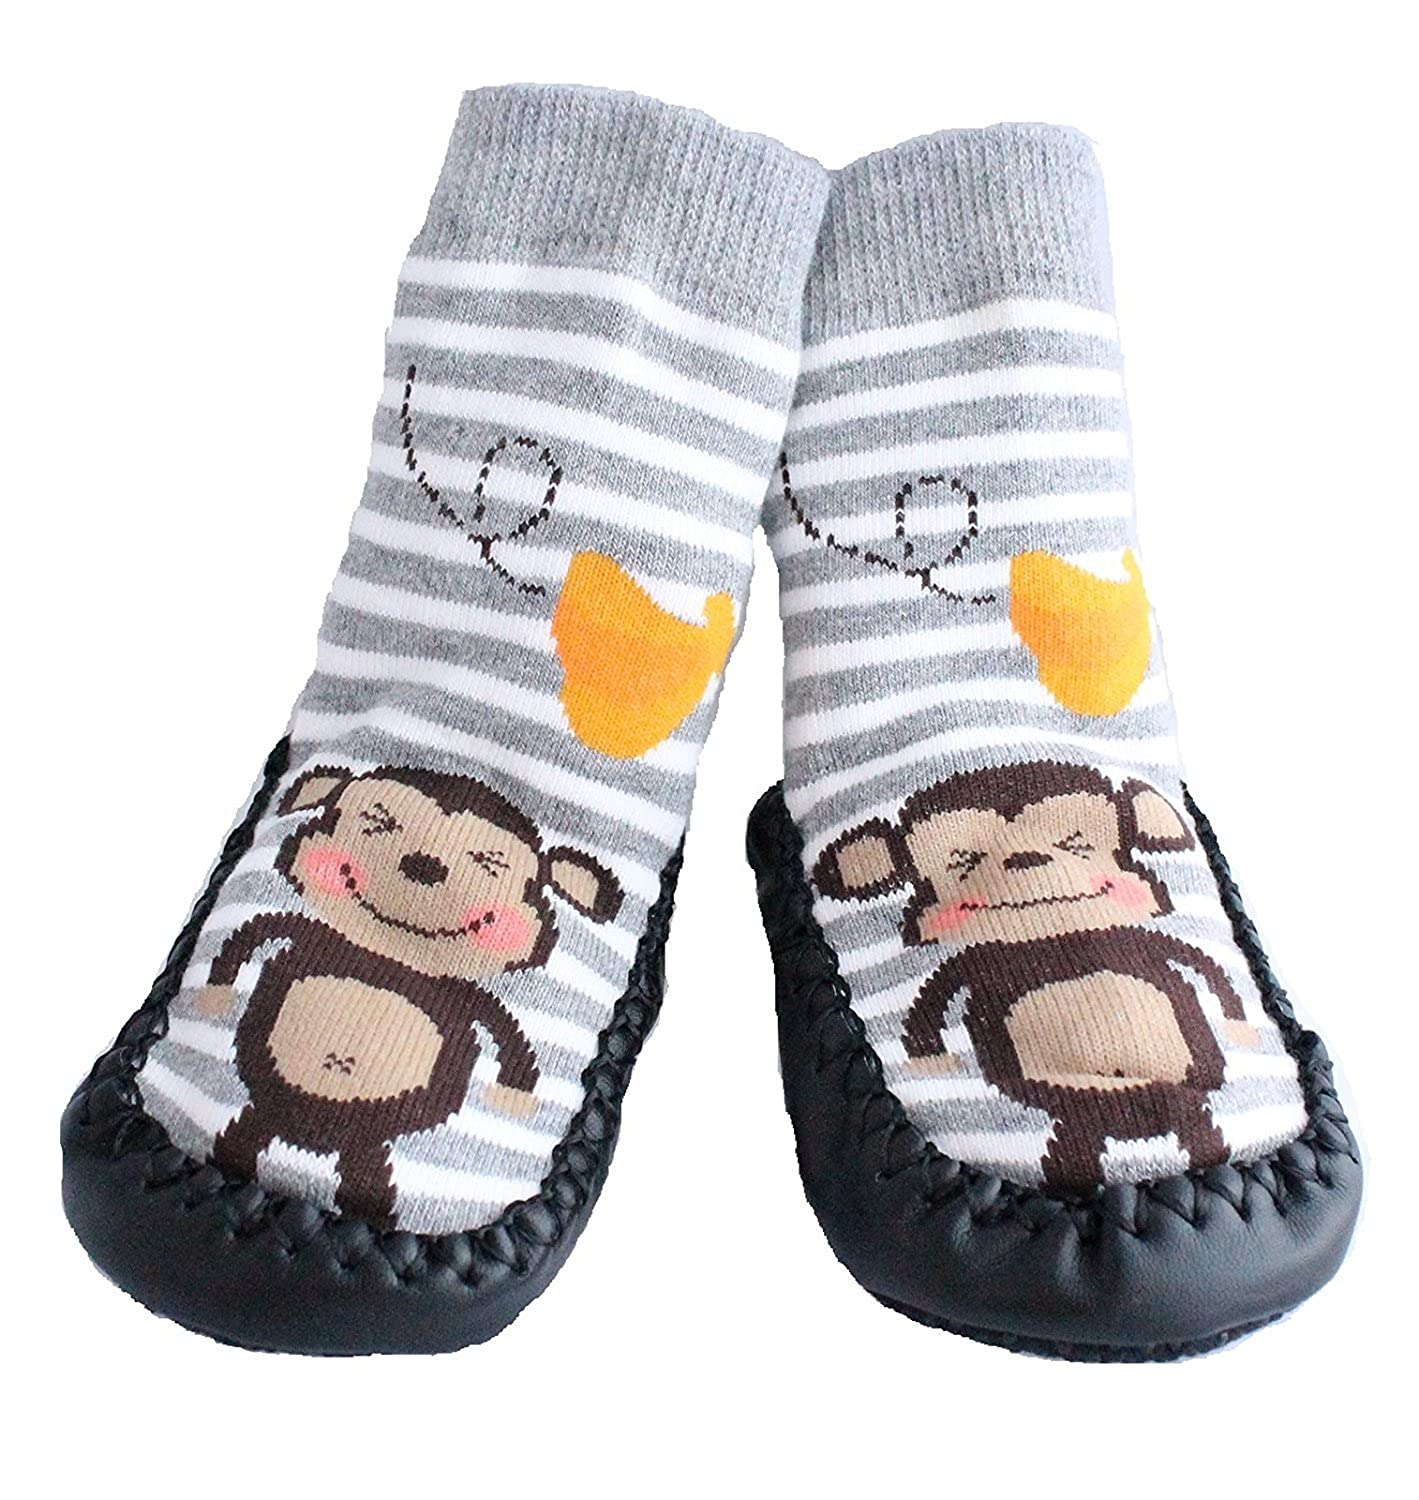 Baby Boys Girls Moccasins NON-SKID Indoor Shoes Socks STRIPED GREY MONKEY